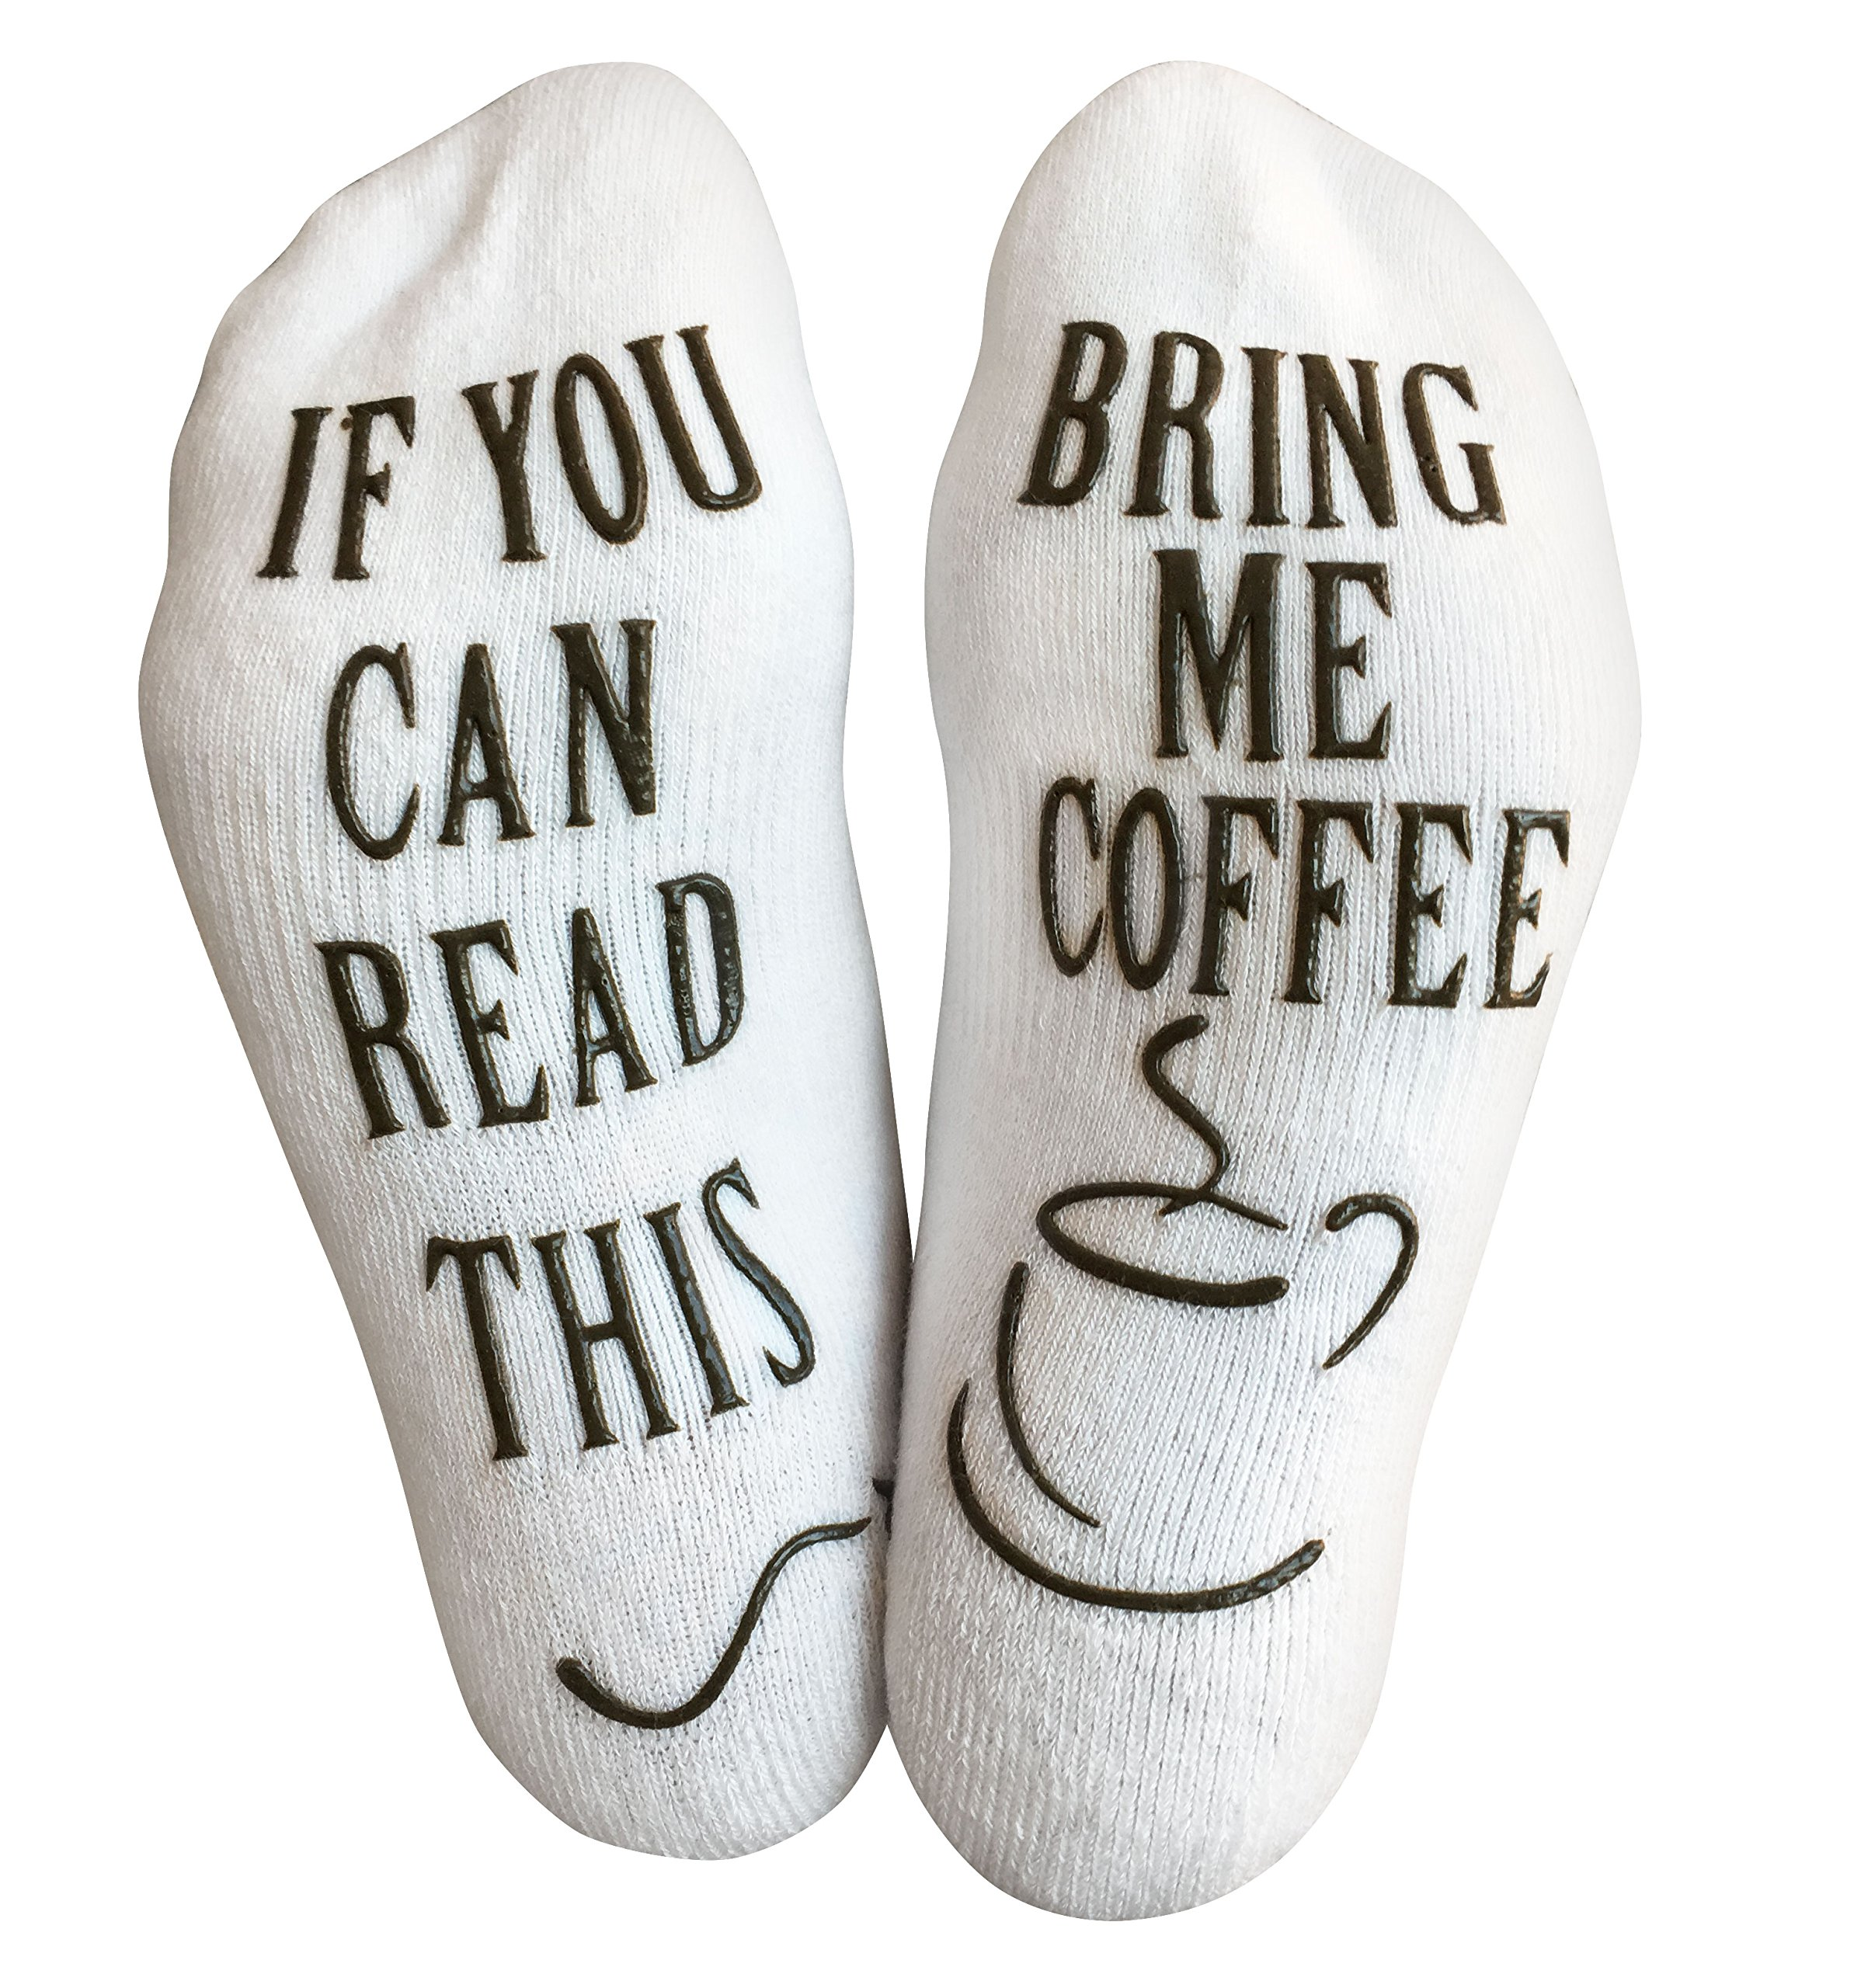 Luxury Cotton''Bring Me Coffee'' Funny Socks - Perfect Mother's Day Gift for Her, Hilarious Novelty or Gag Gift Idea for Wife or Husband - Best White Elephant Present For Coffee Lover